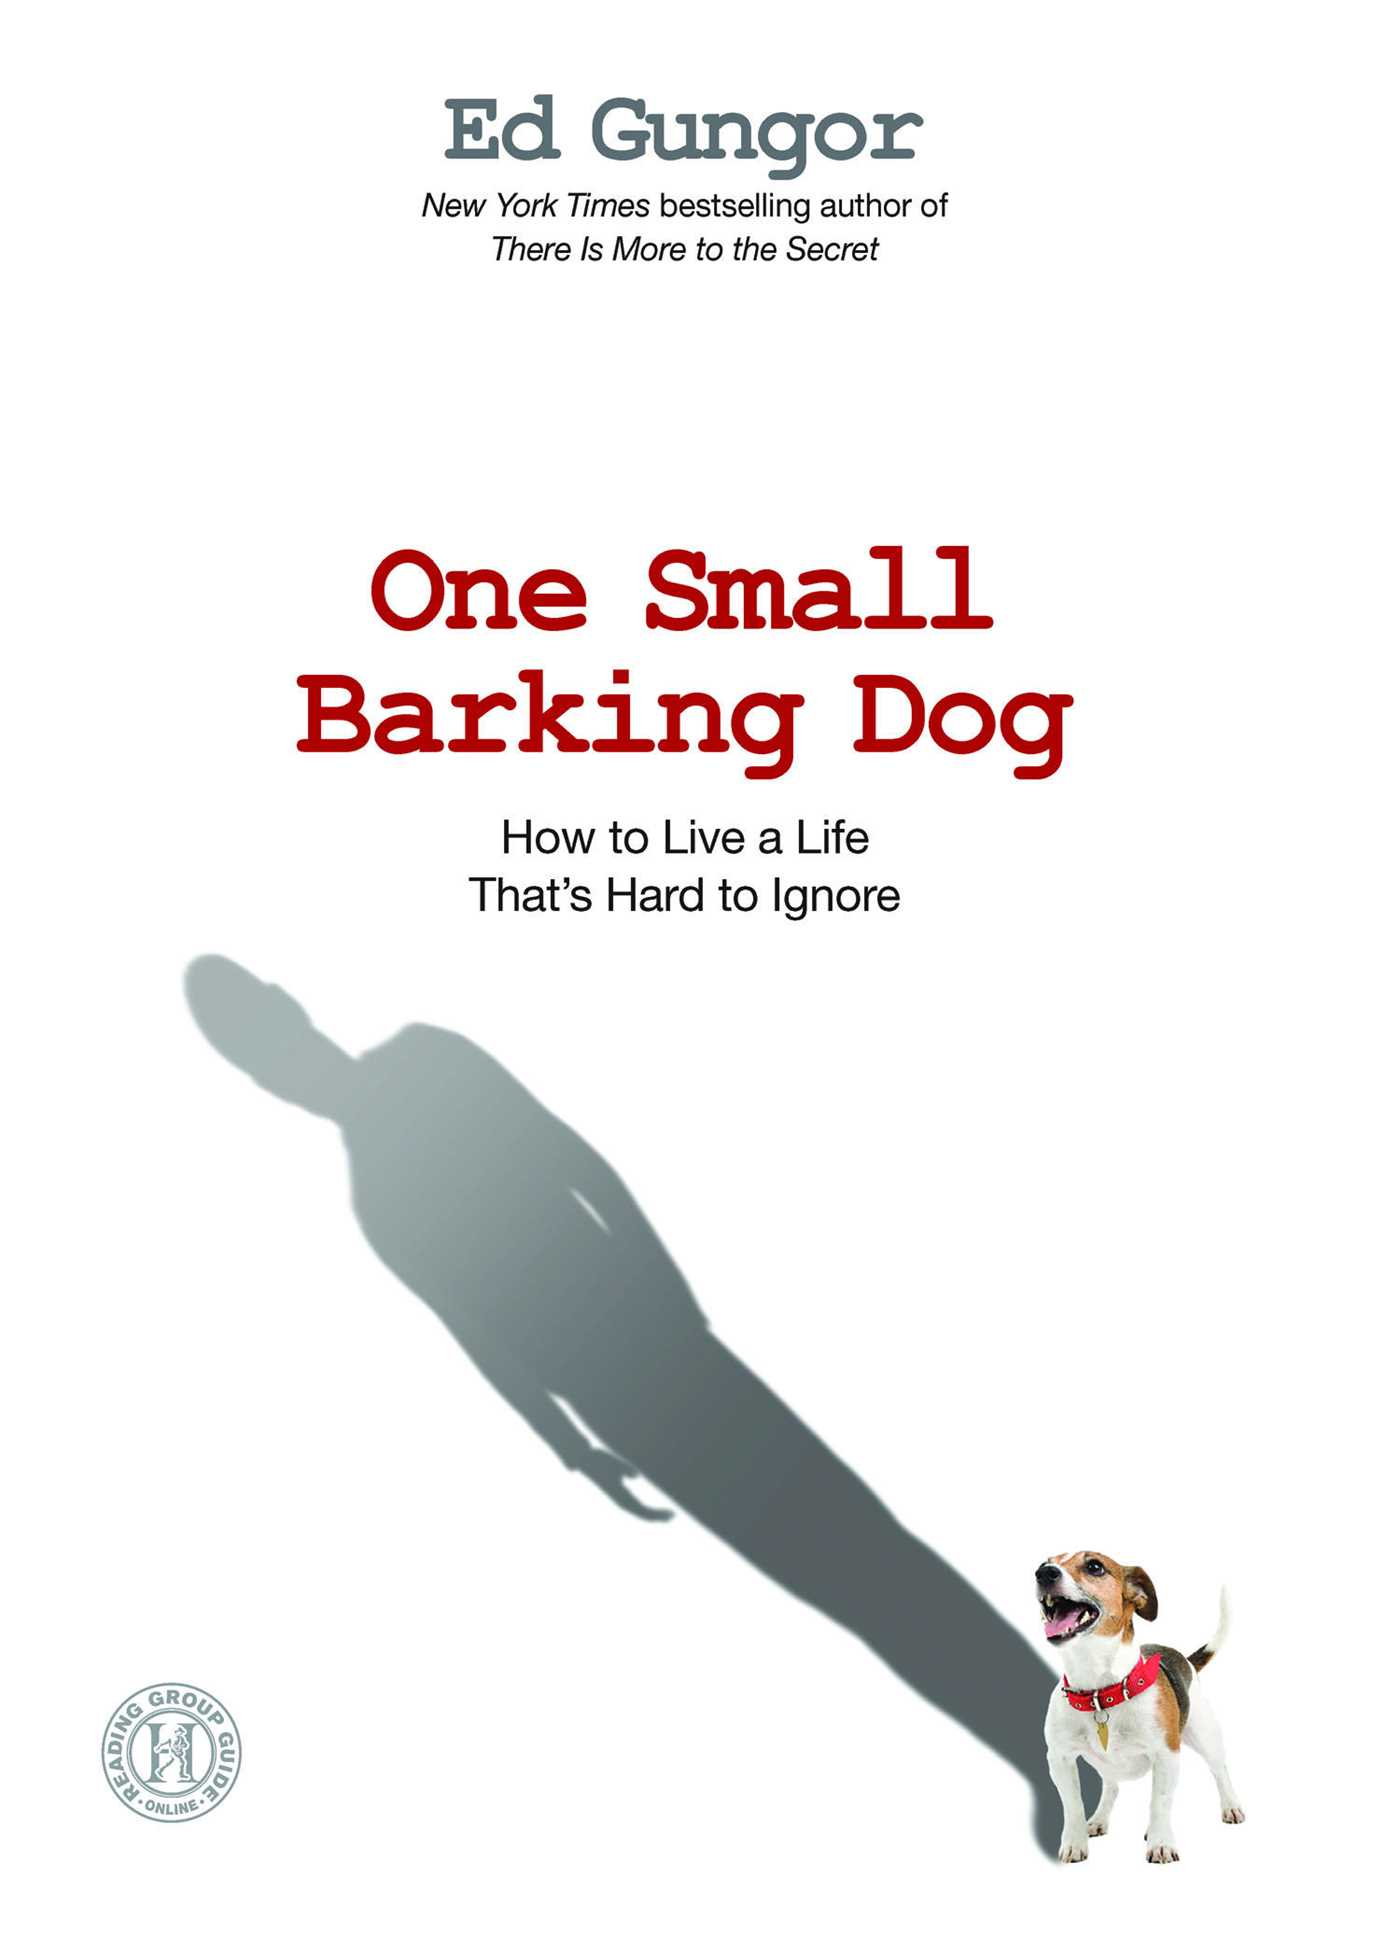 One small barking dog 9781439172766 hr